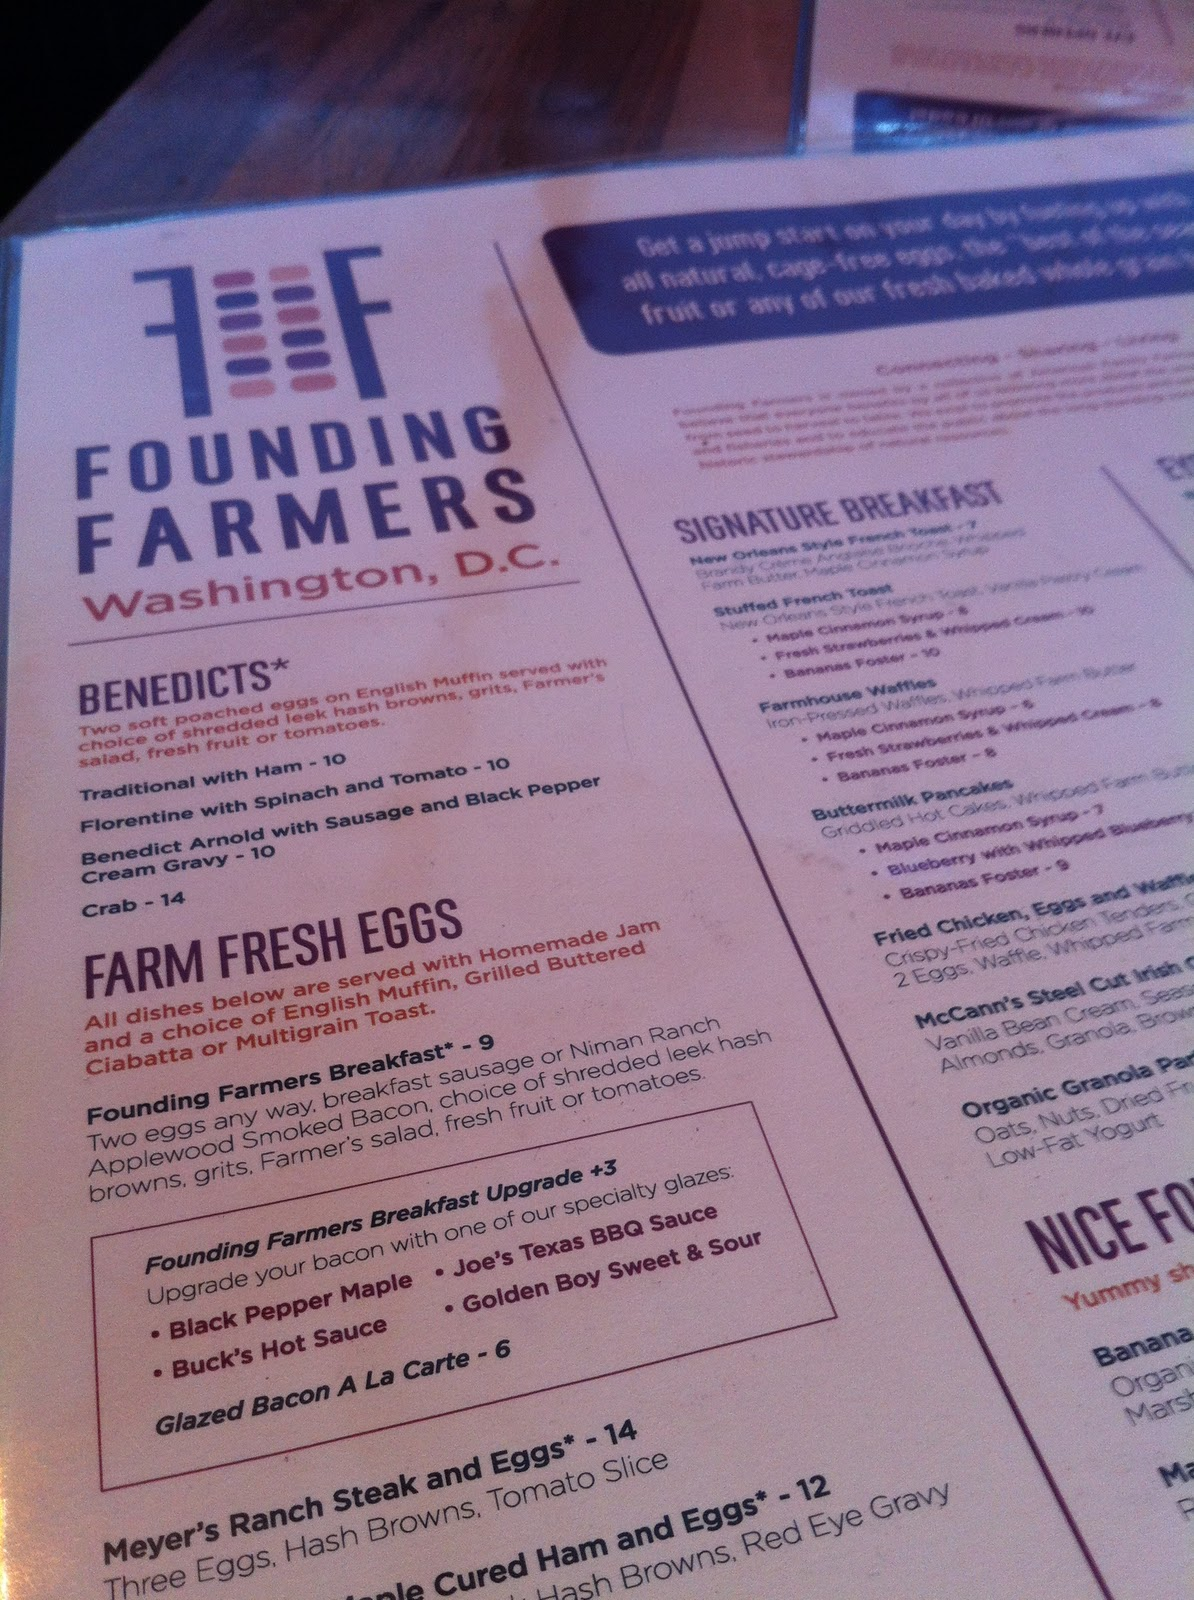 Founding Farmers Dc Reservations In Washington Dc   Lobster House